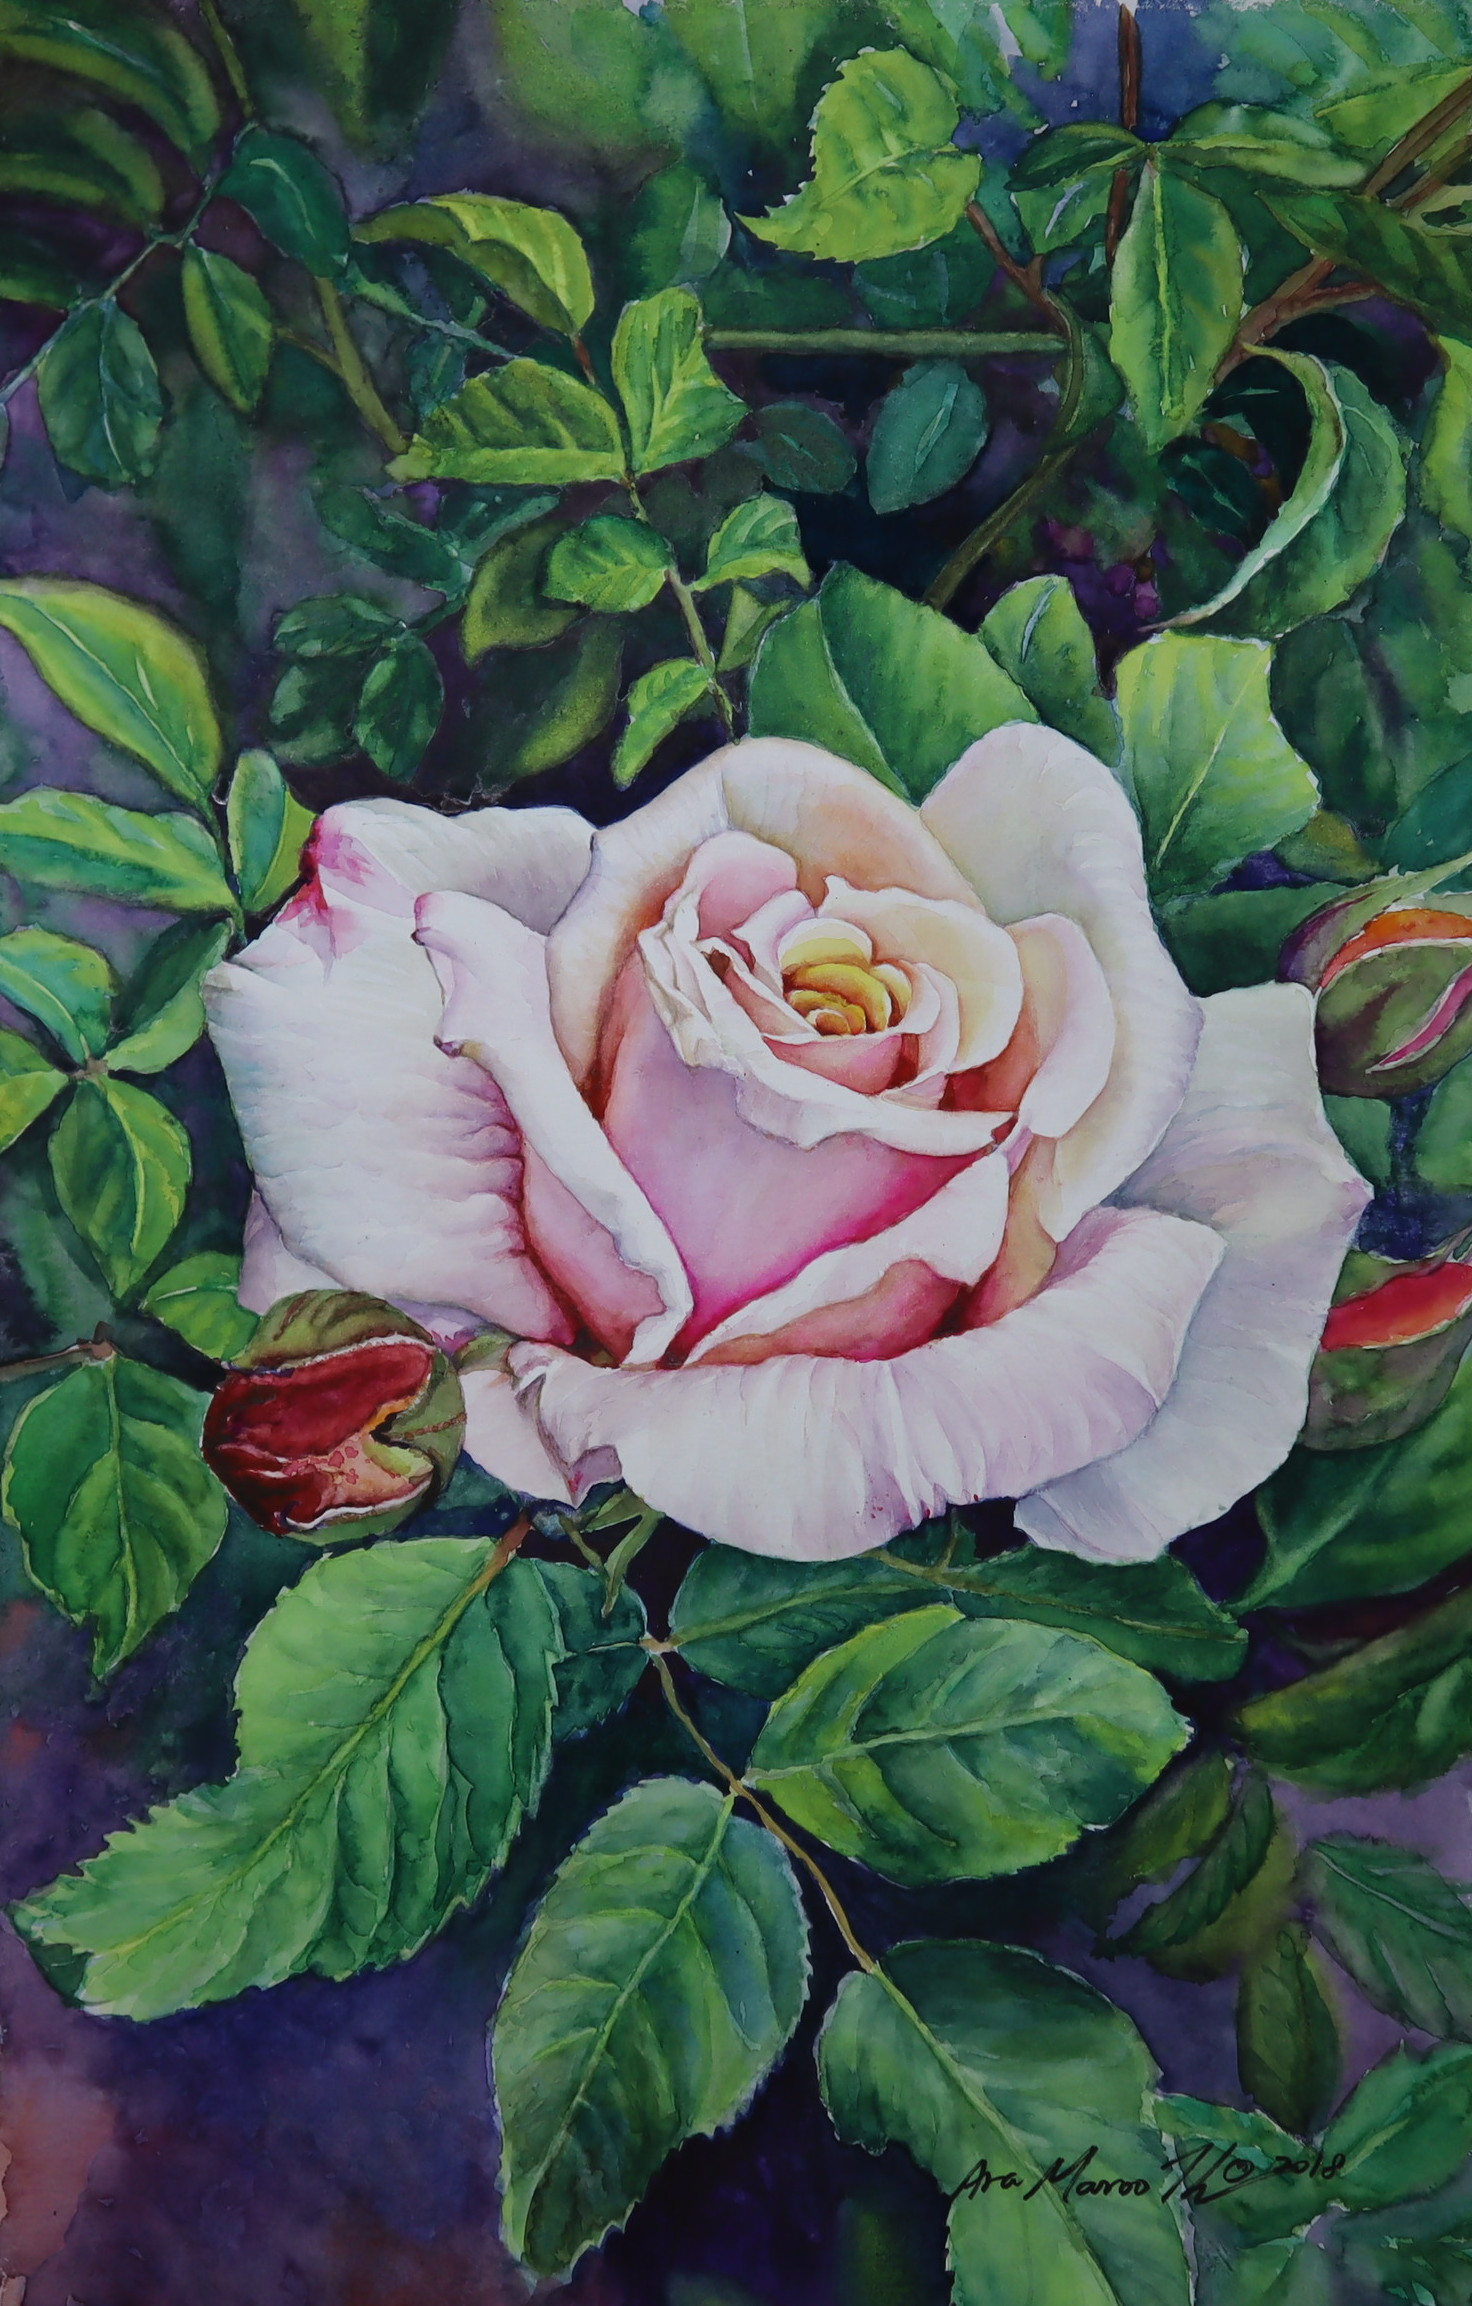 The Rose #3